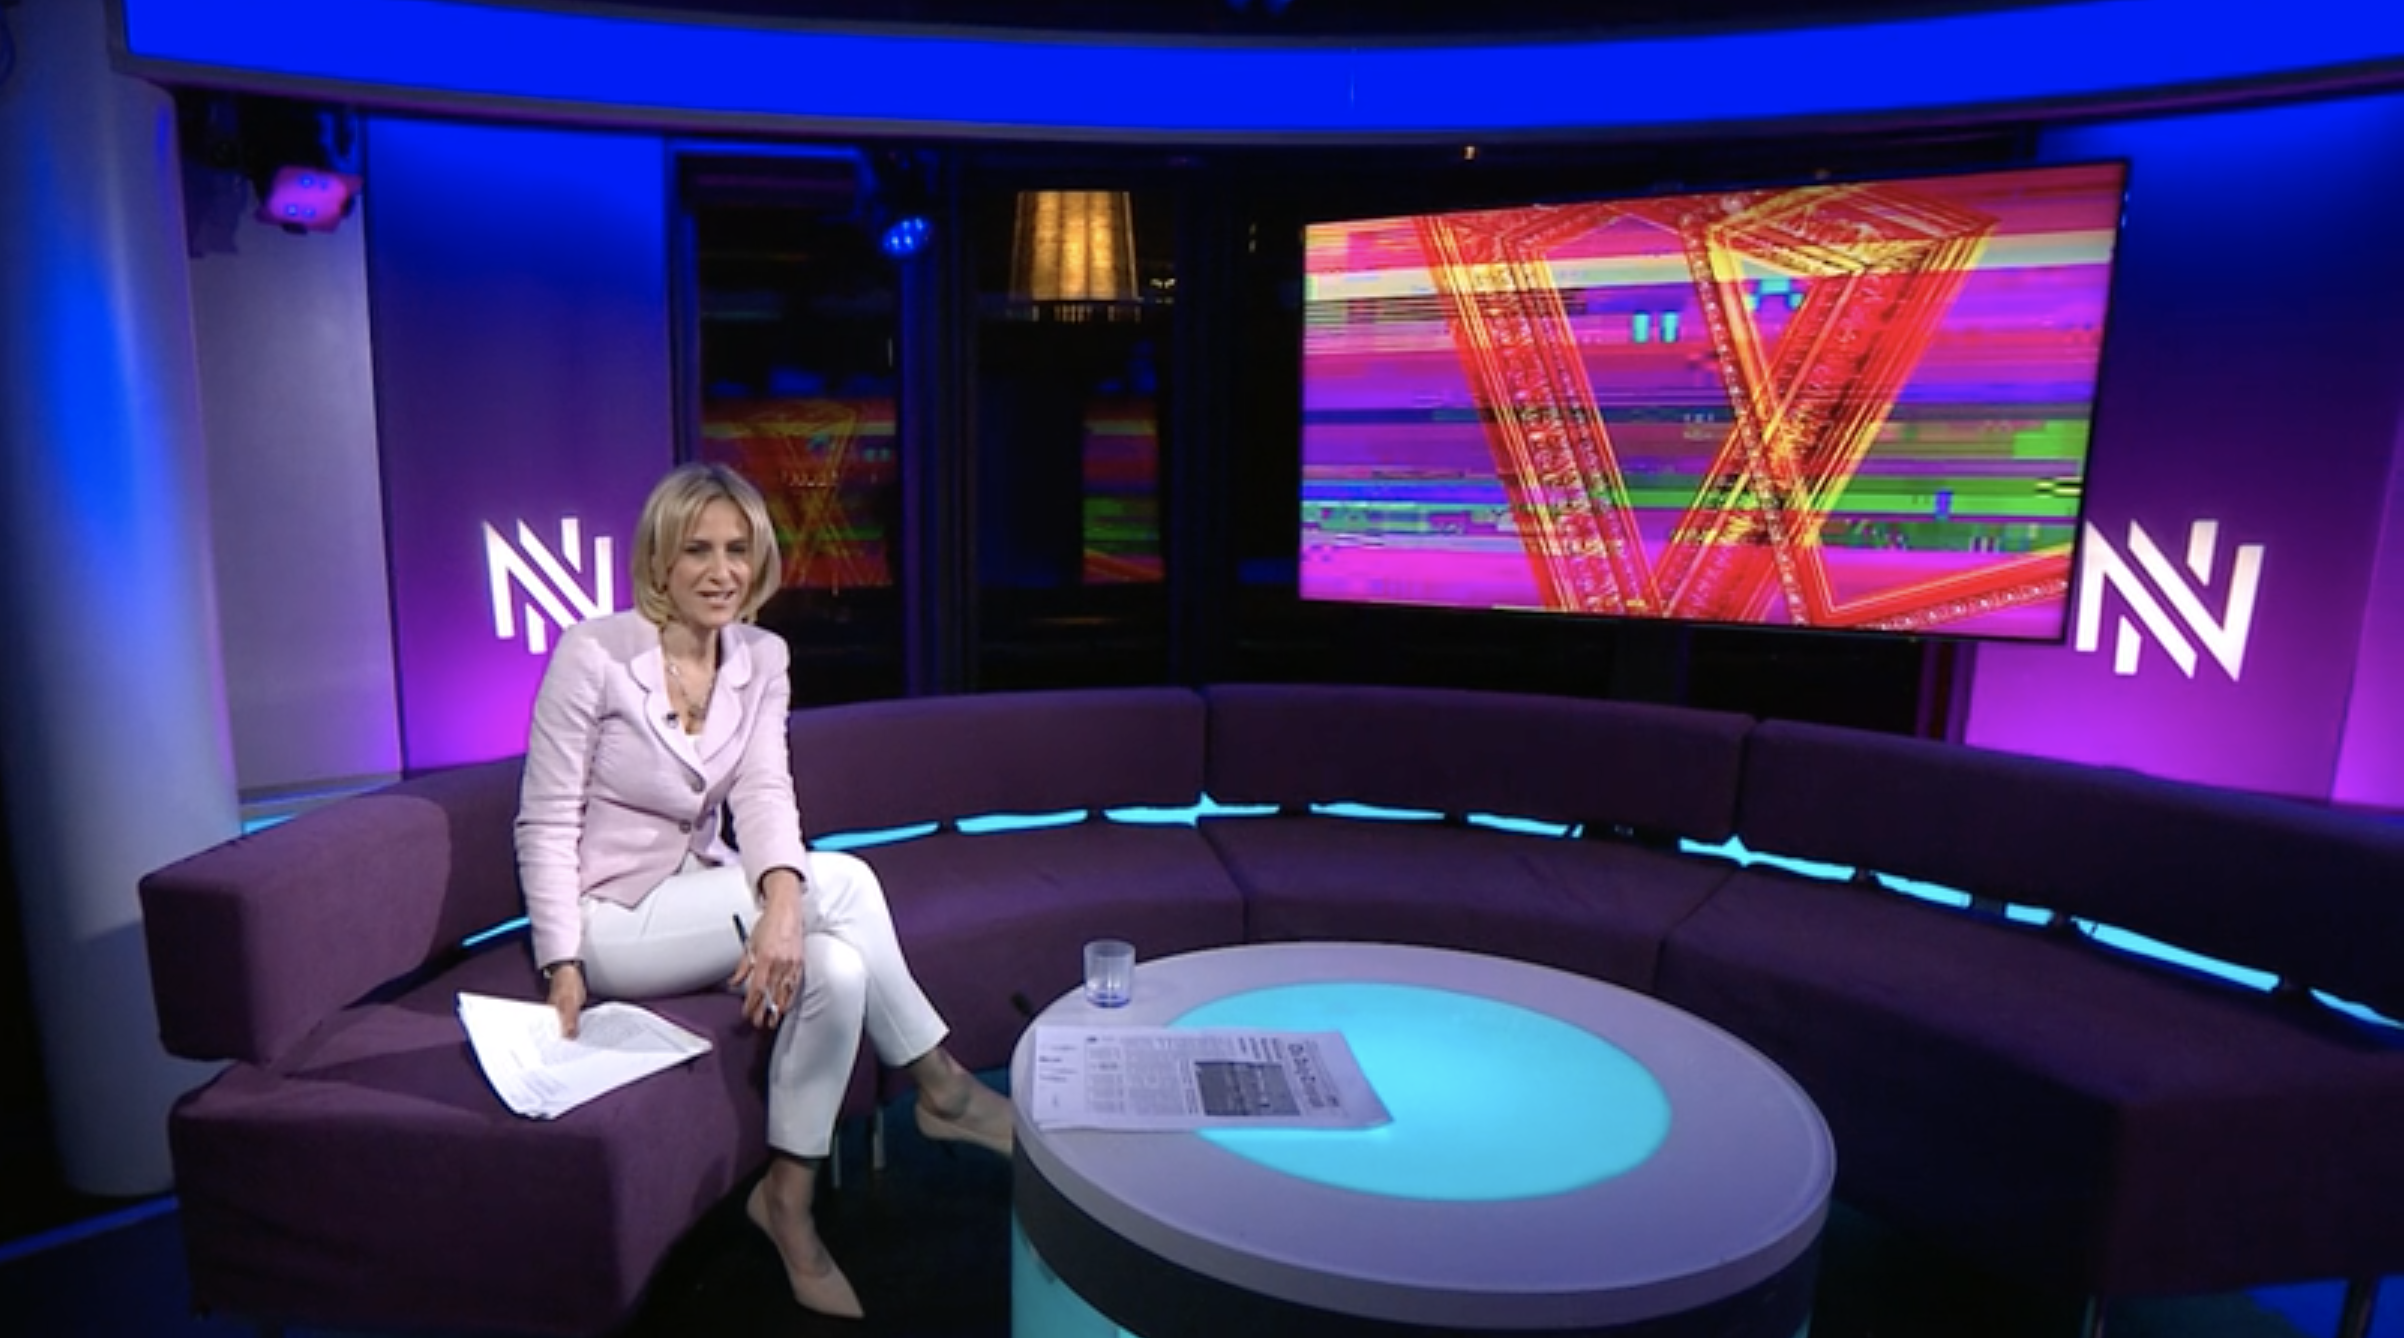 Newsnight features NFTs, March 2021